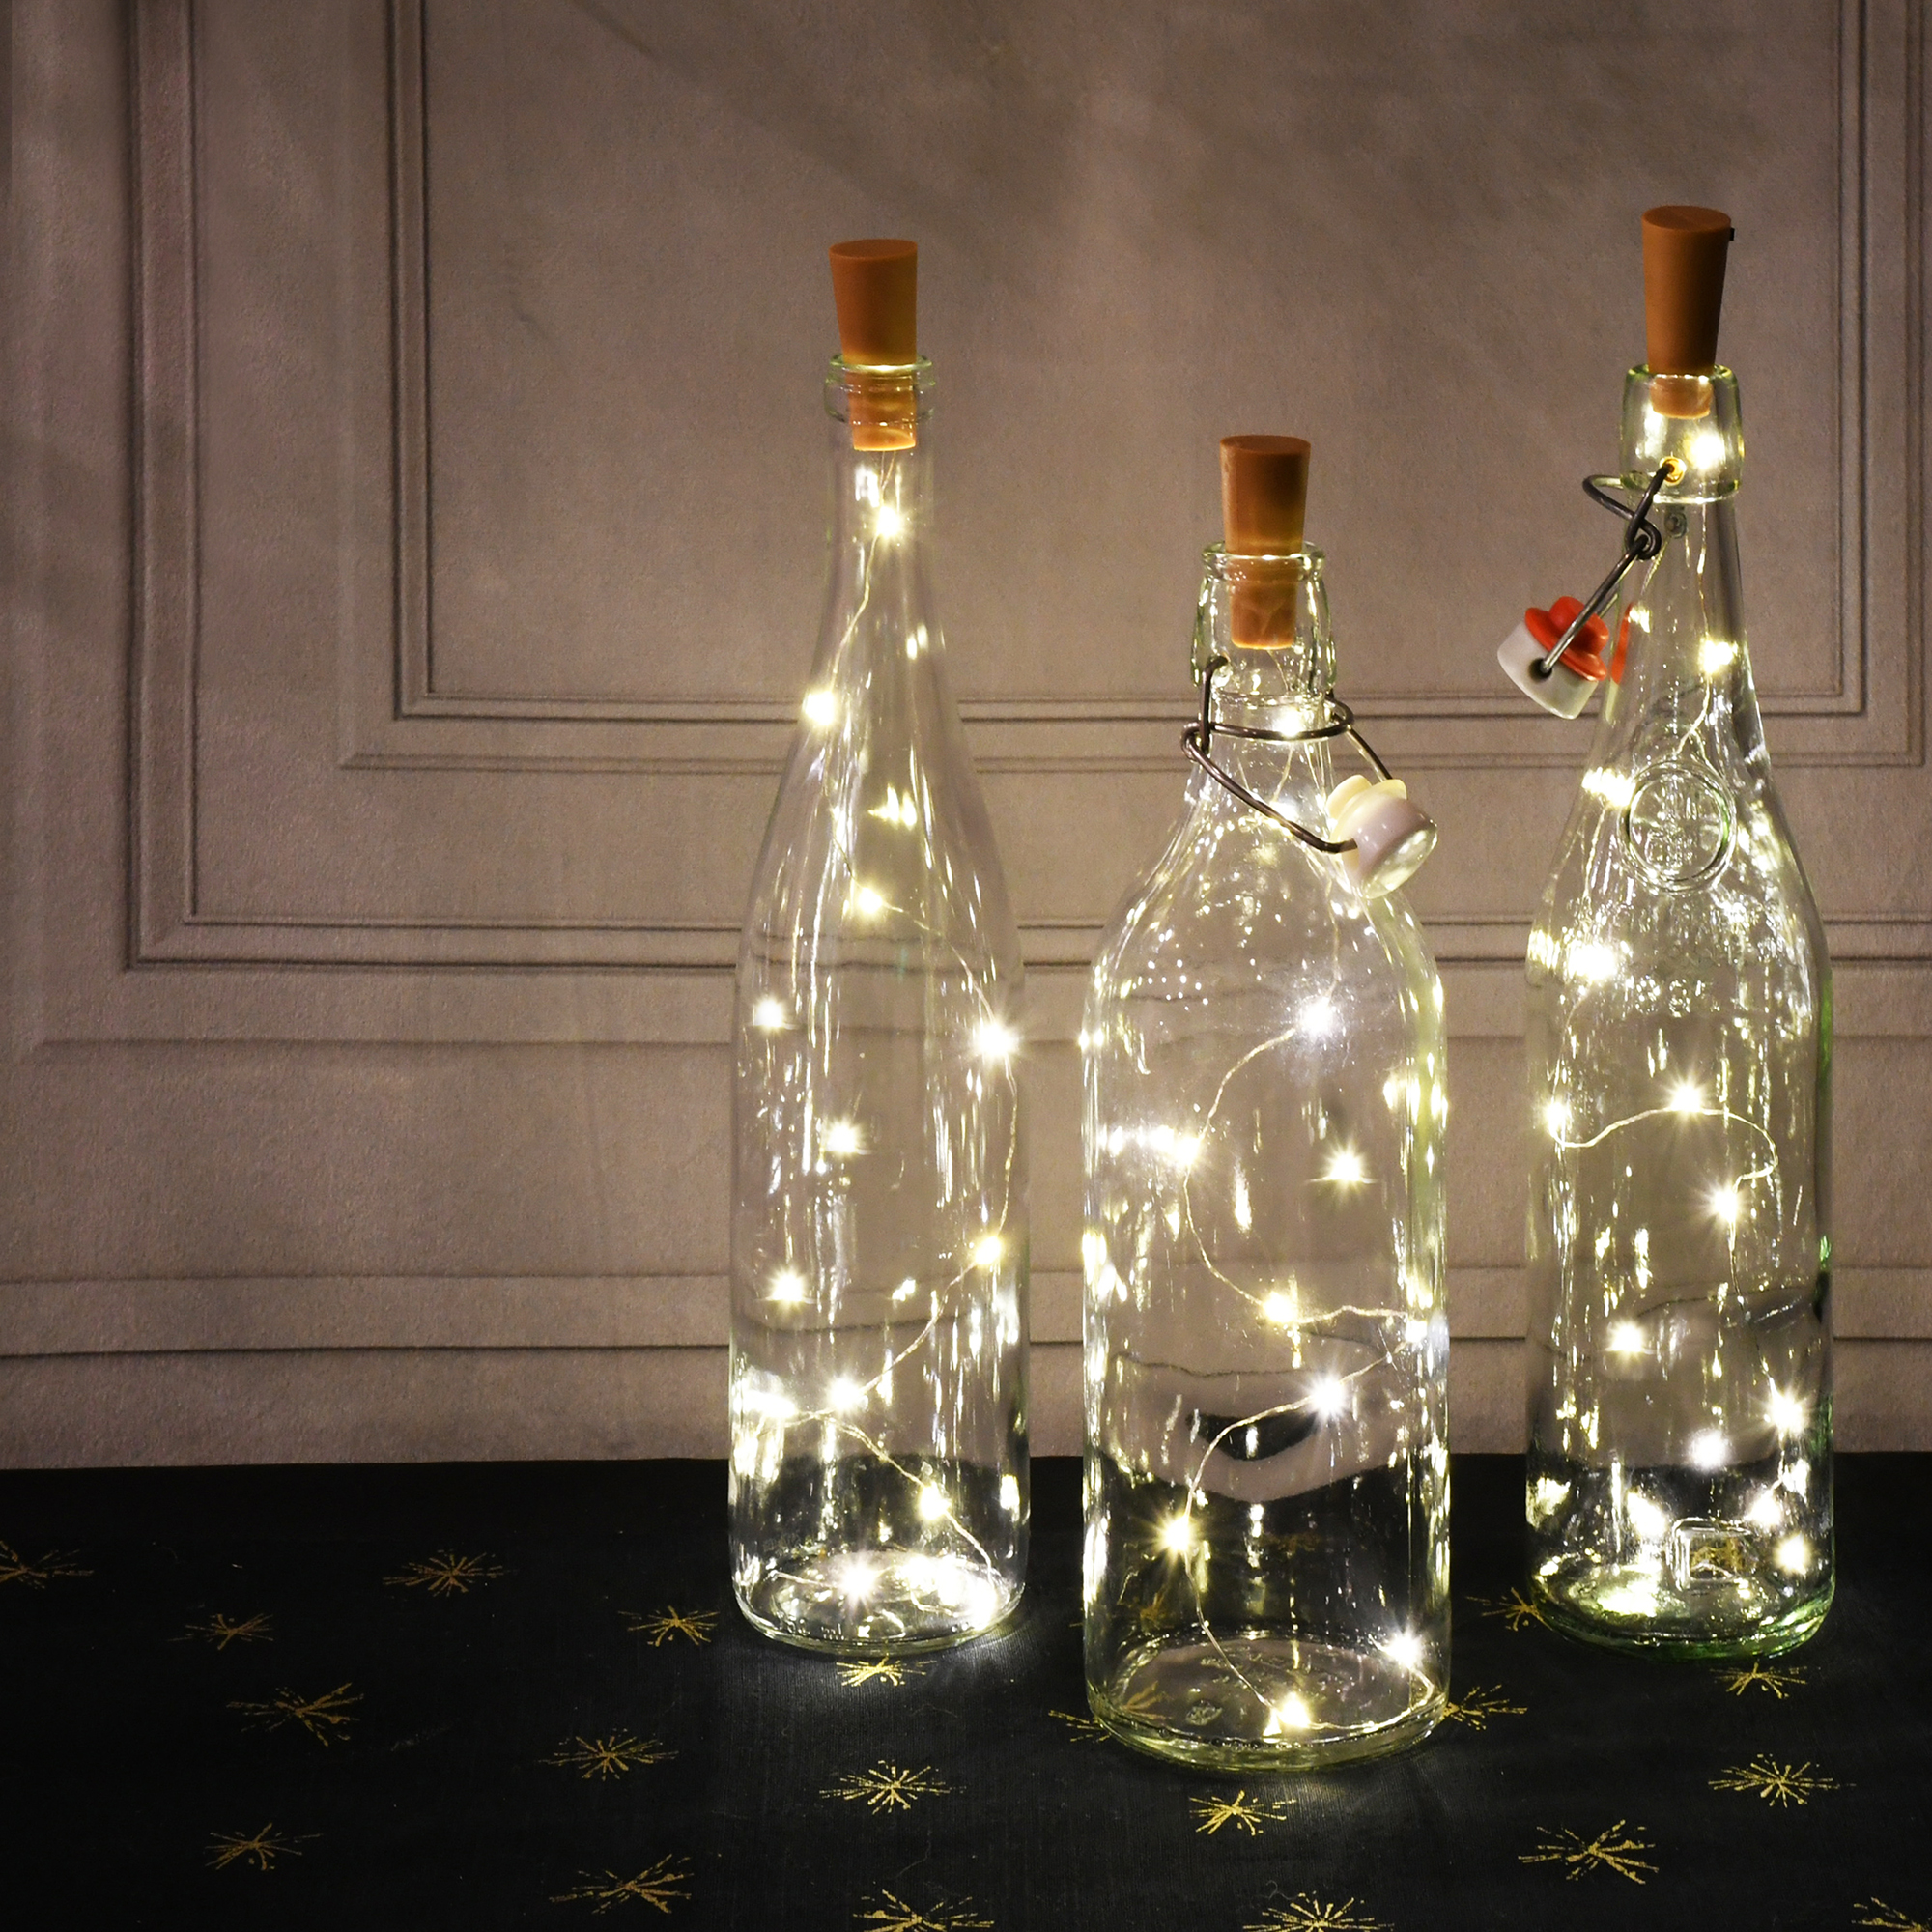 Bottle Lights with Cork 10 Pack 15 LED Flashing Cork Lights Battery Operated